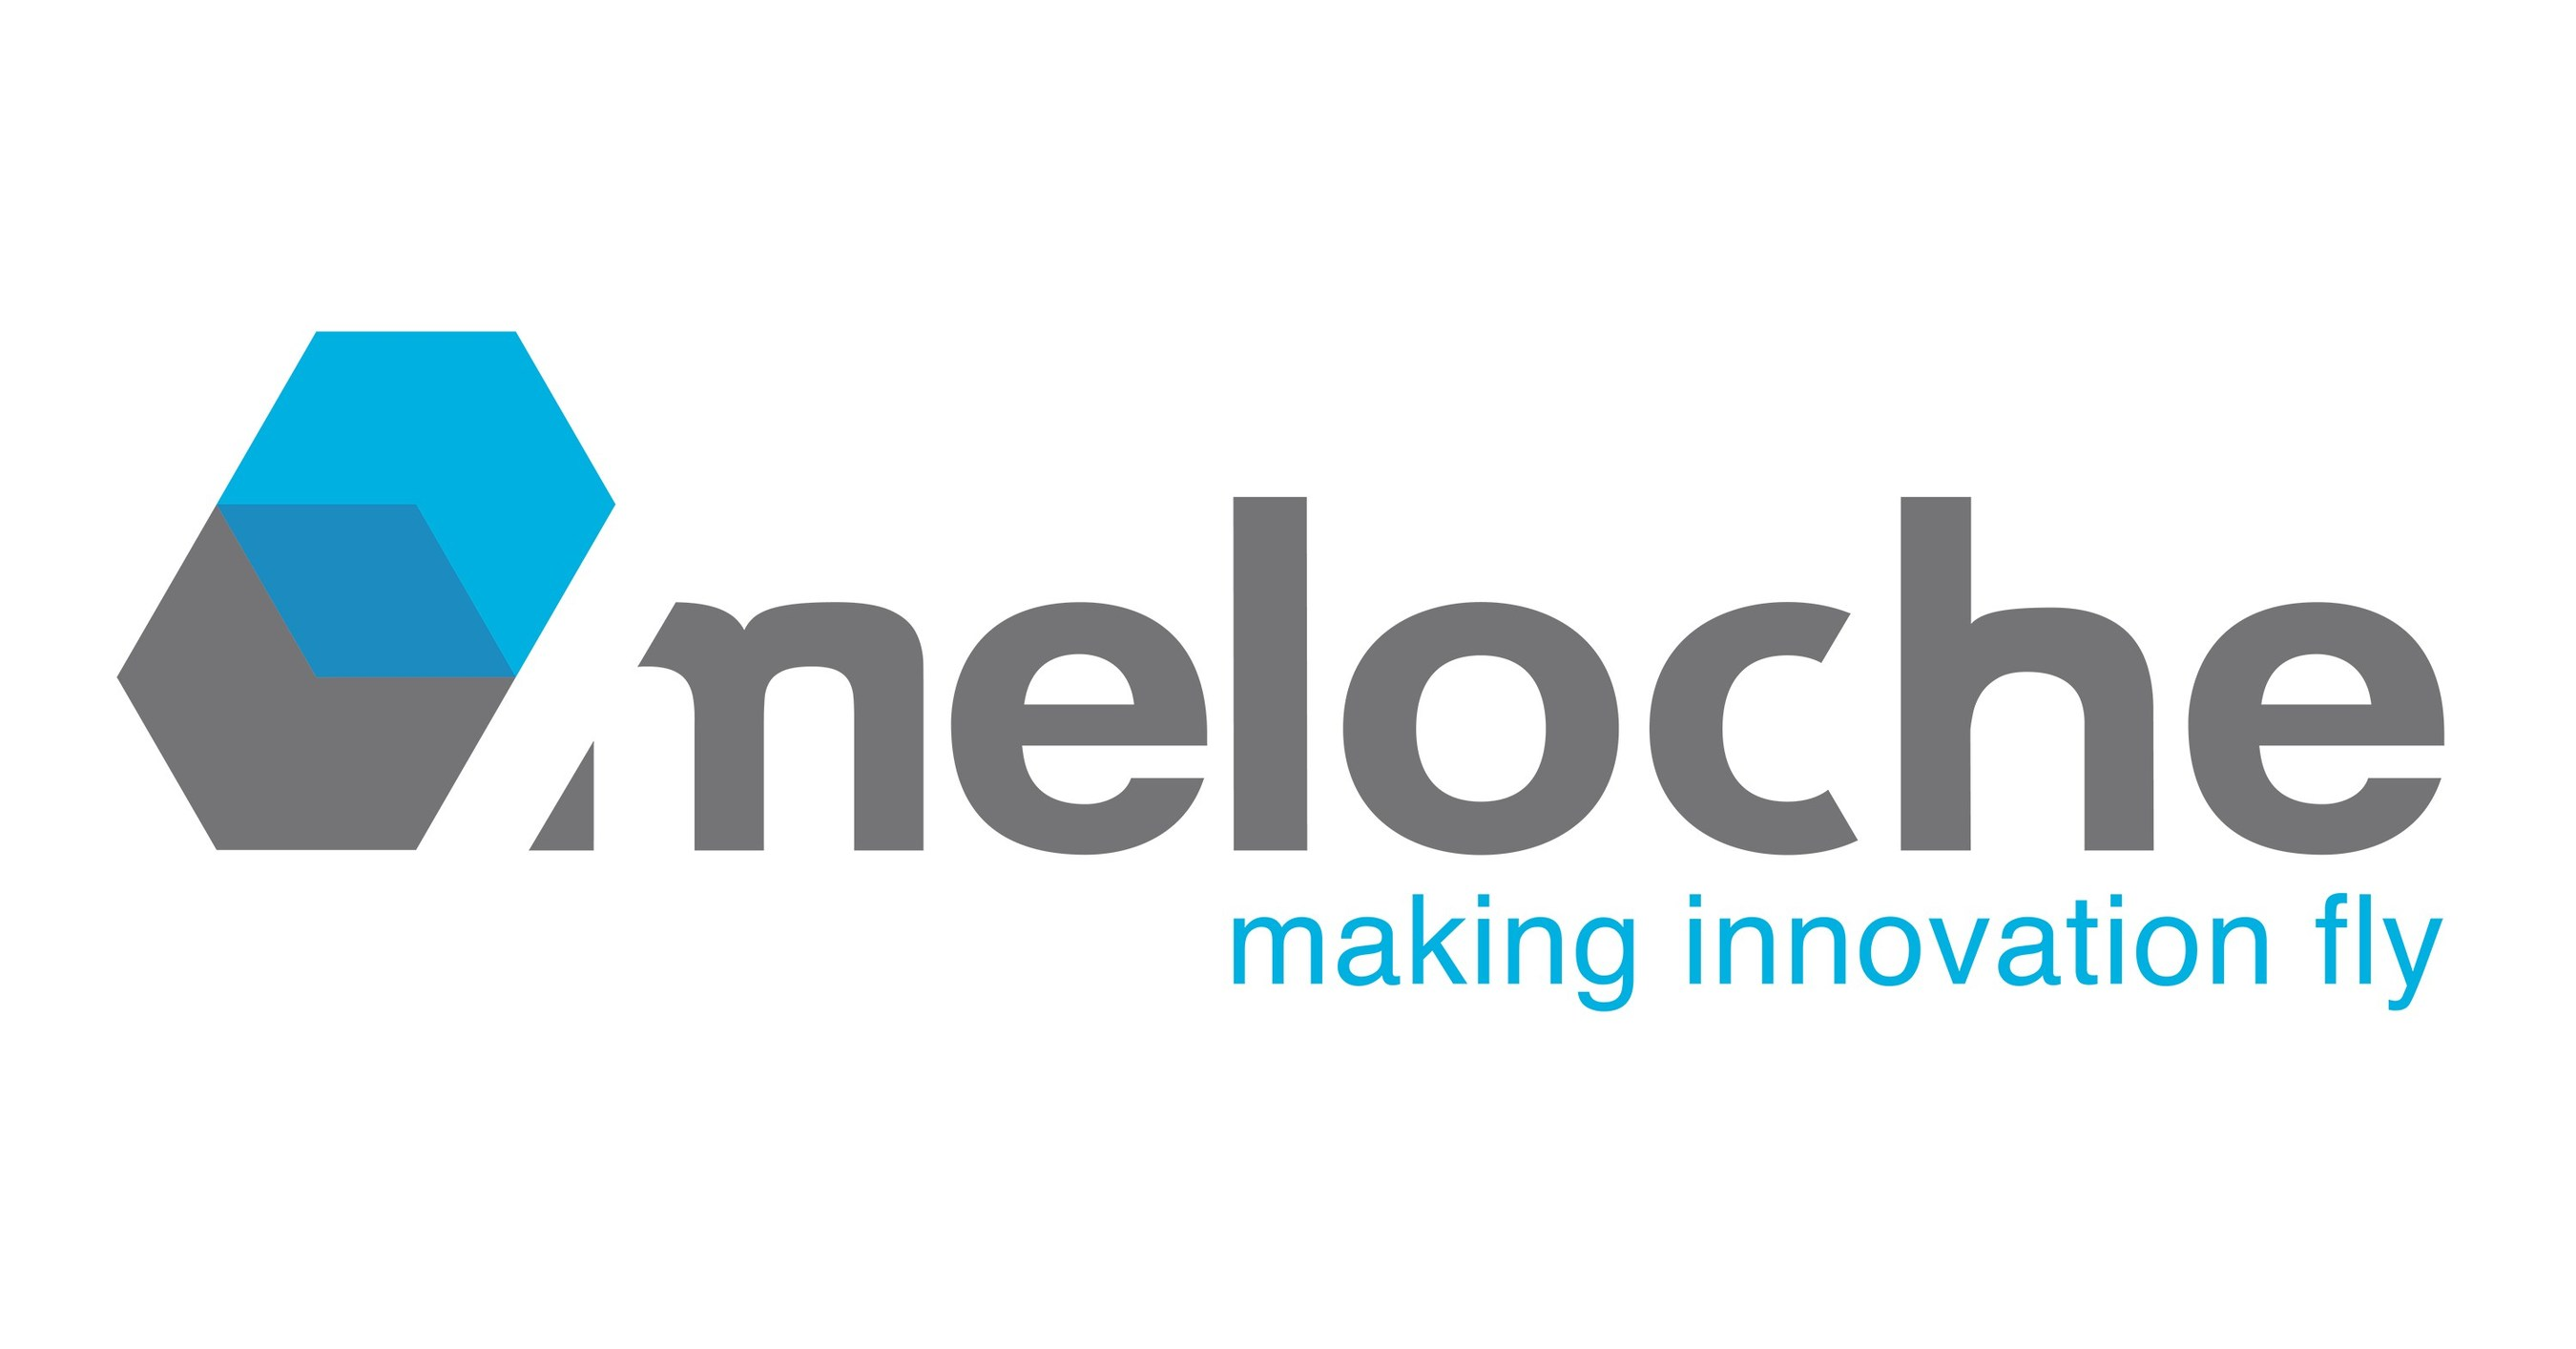 groupe meloche invests 17 5 million to continue its growth fonds de solidarit ftq invests 7. Black Bedroom Furniture Sets. Home Design Ideas